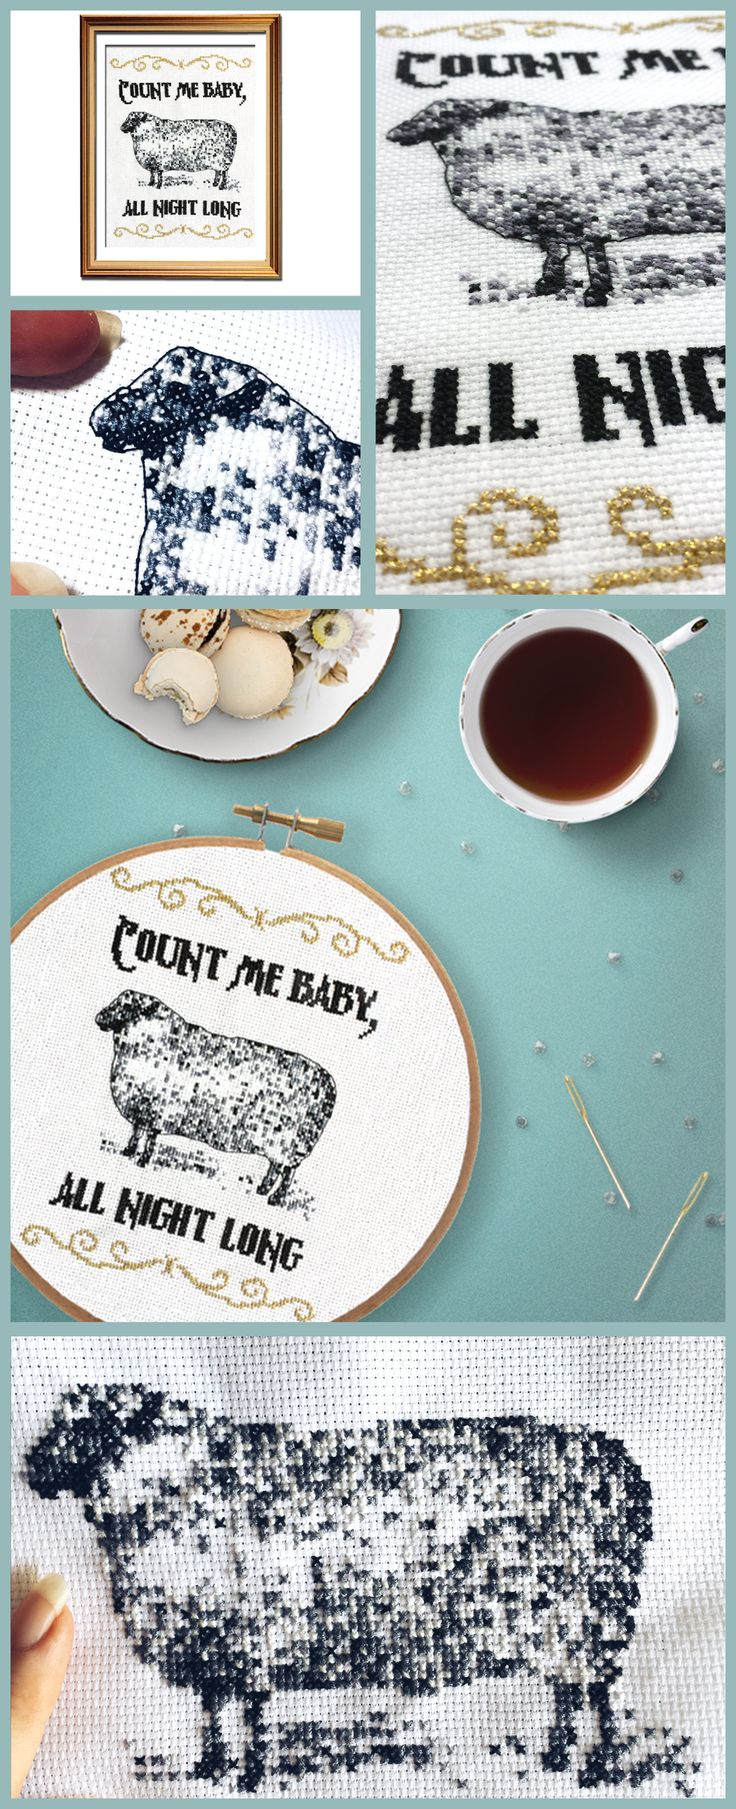 The perfect funny cross stitch pattern for insomniacs